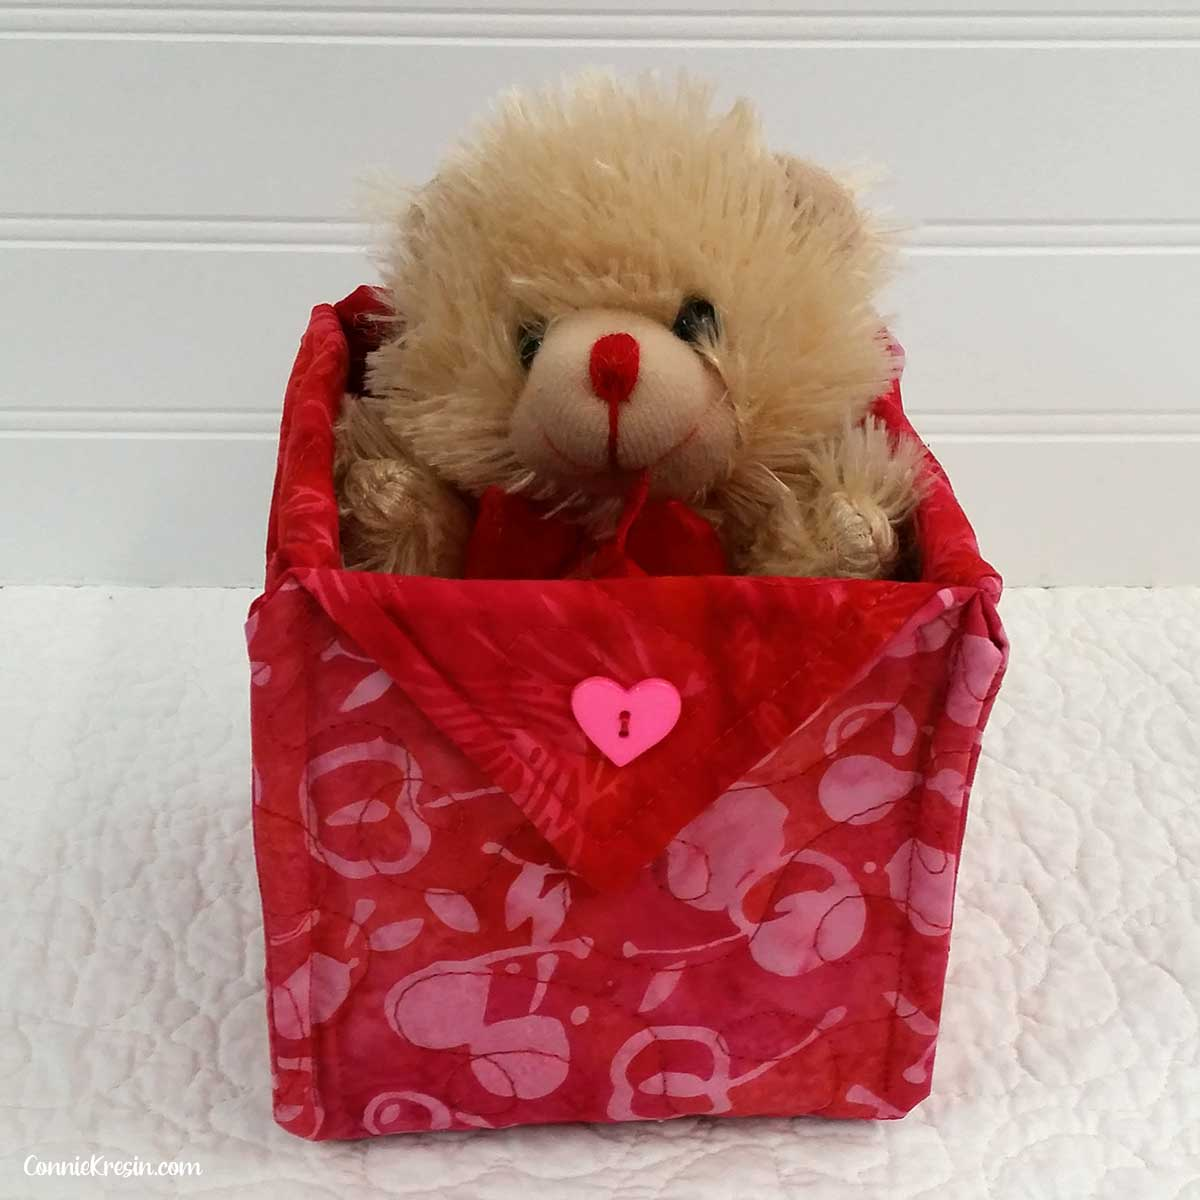 Valentine fabric basket with teddy bear in it